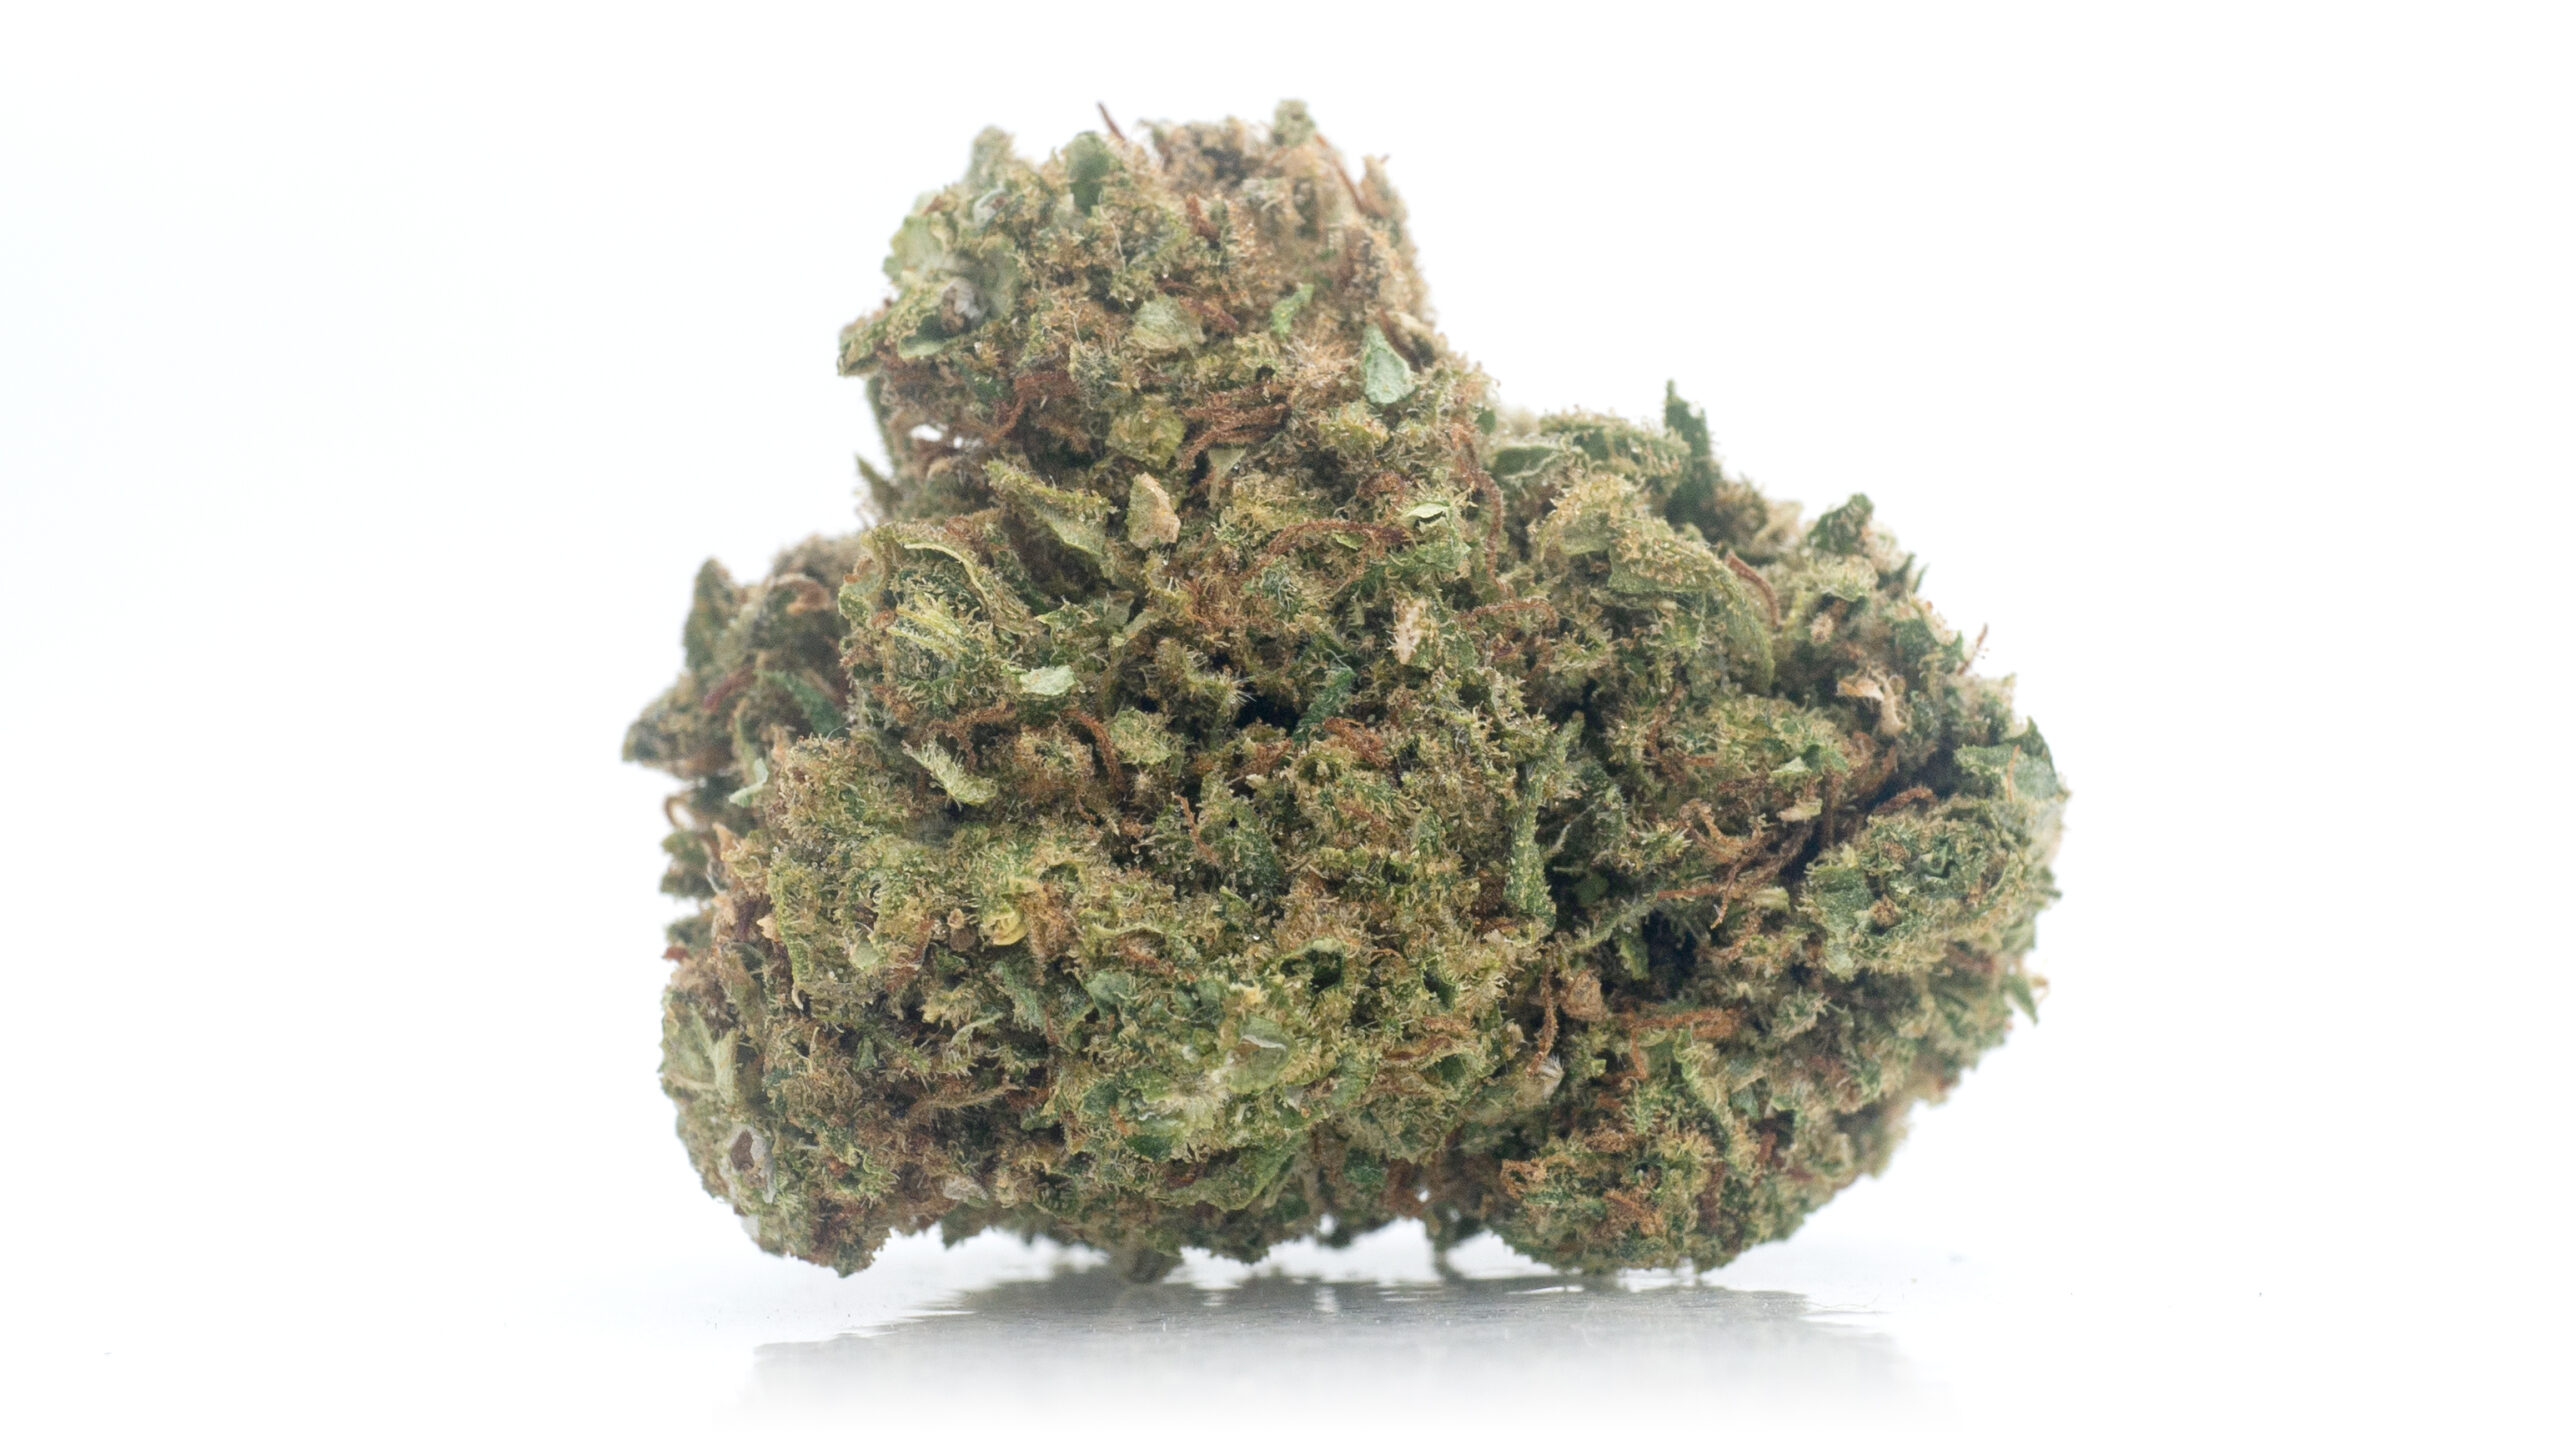 Tightly trimmed bud of Simply Bare's Charlotte CBD